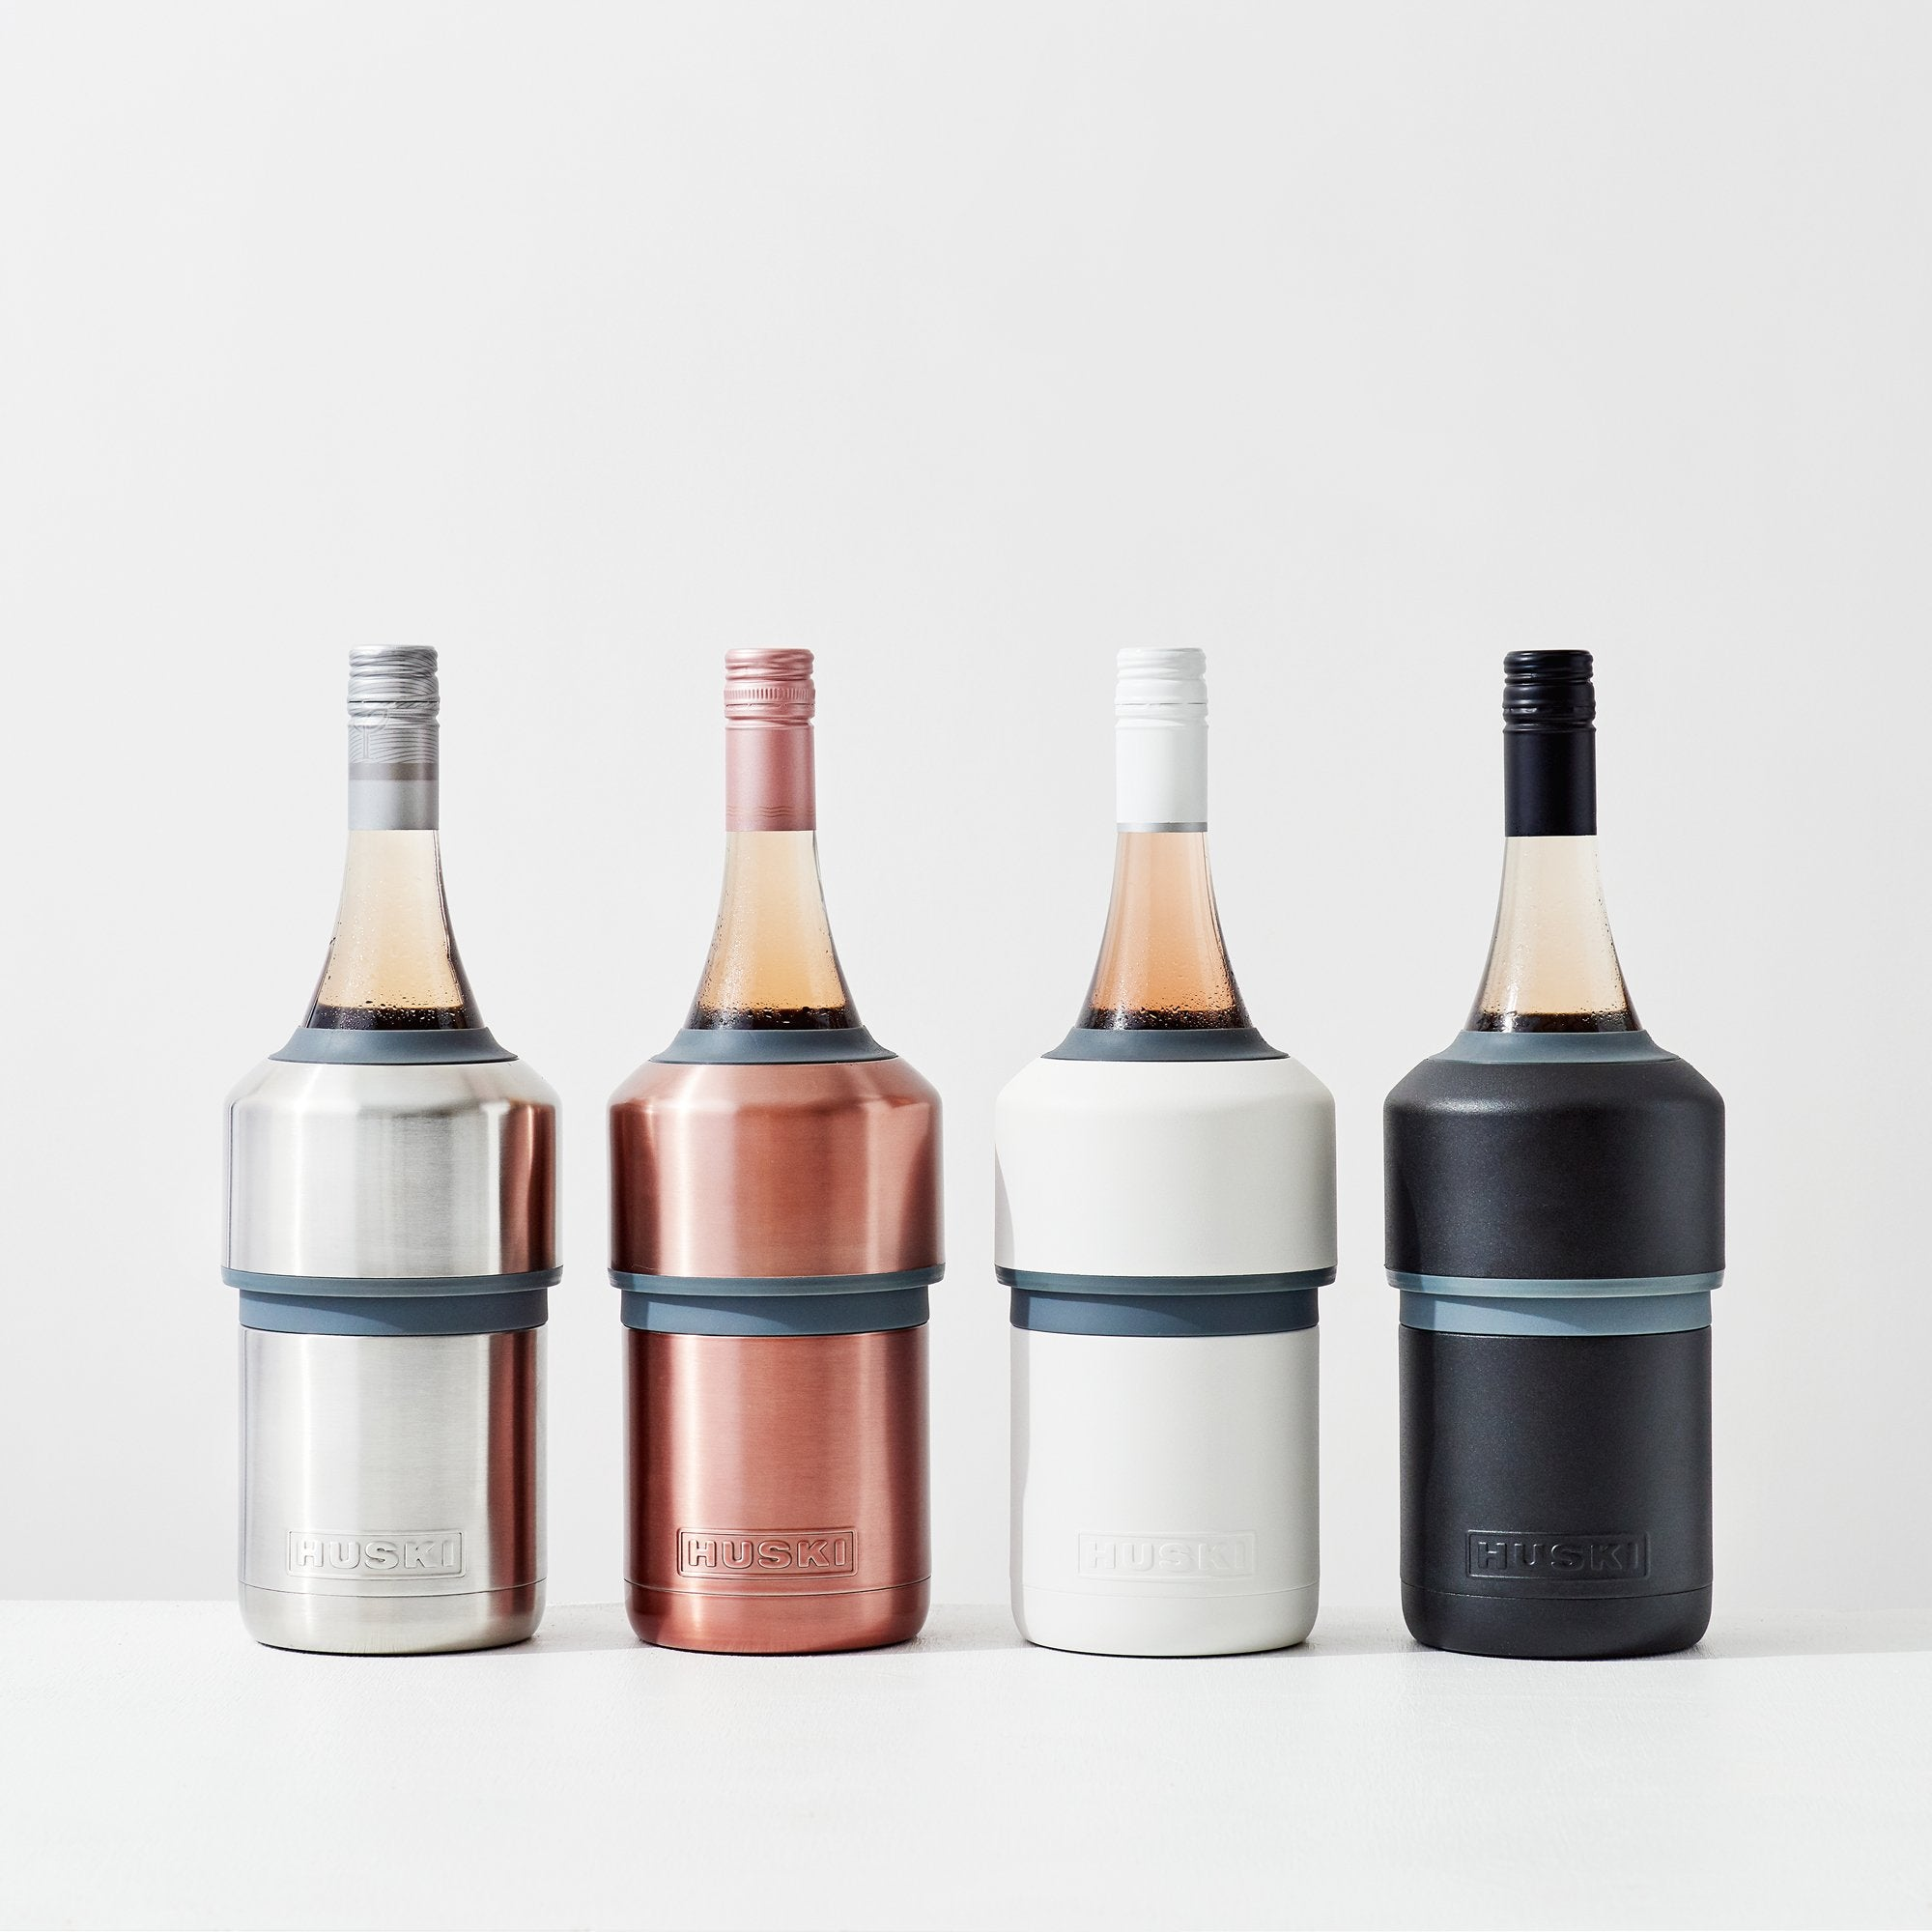 HUSKI - Wine Cooler - Brushed Stainless